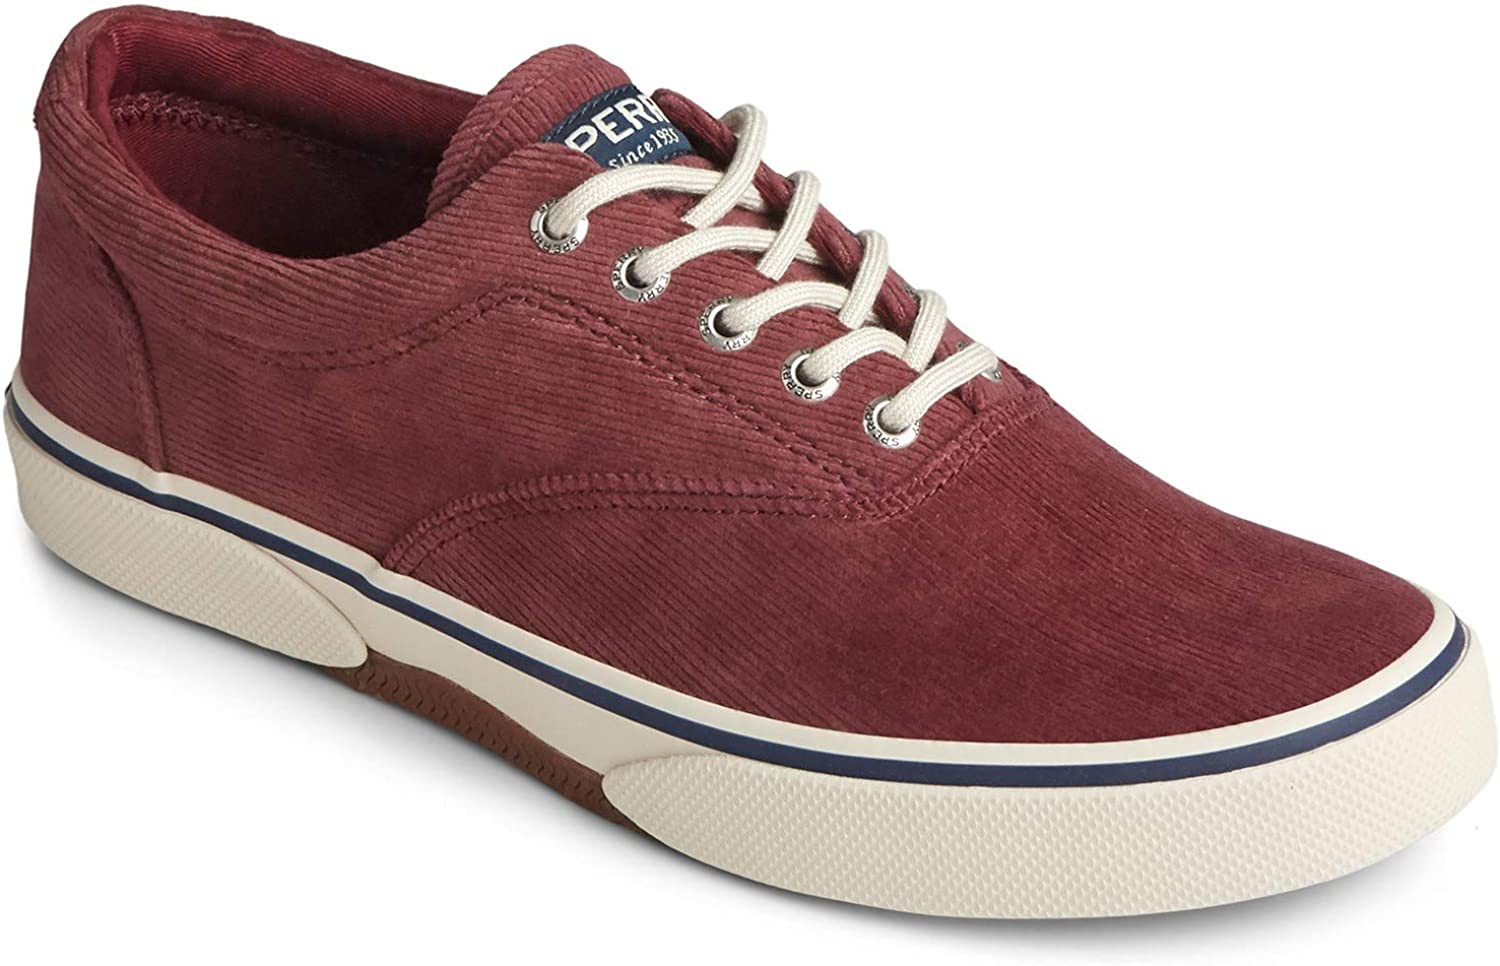 OFFicial site Sperry Men's SEAL limited product Halyard CVO Sneaker